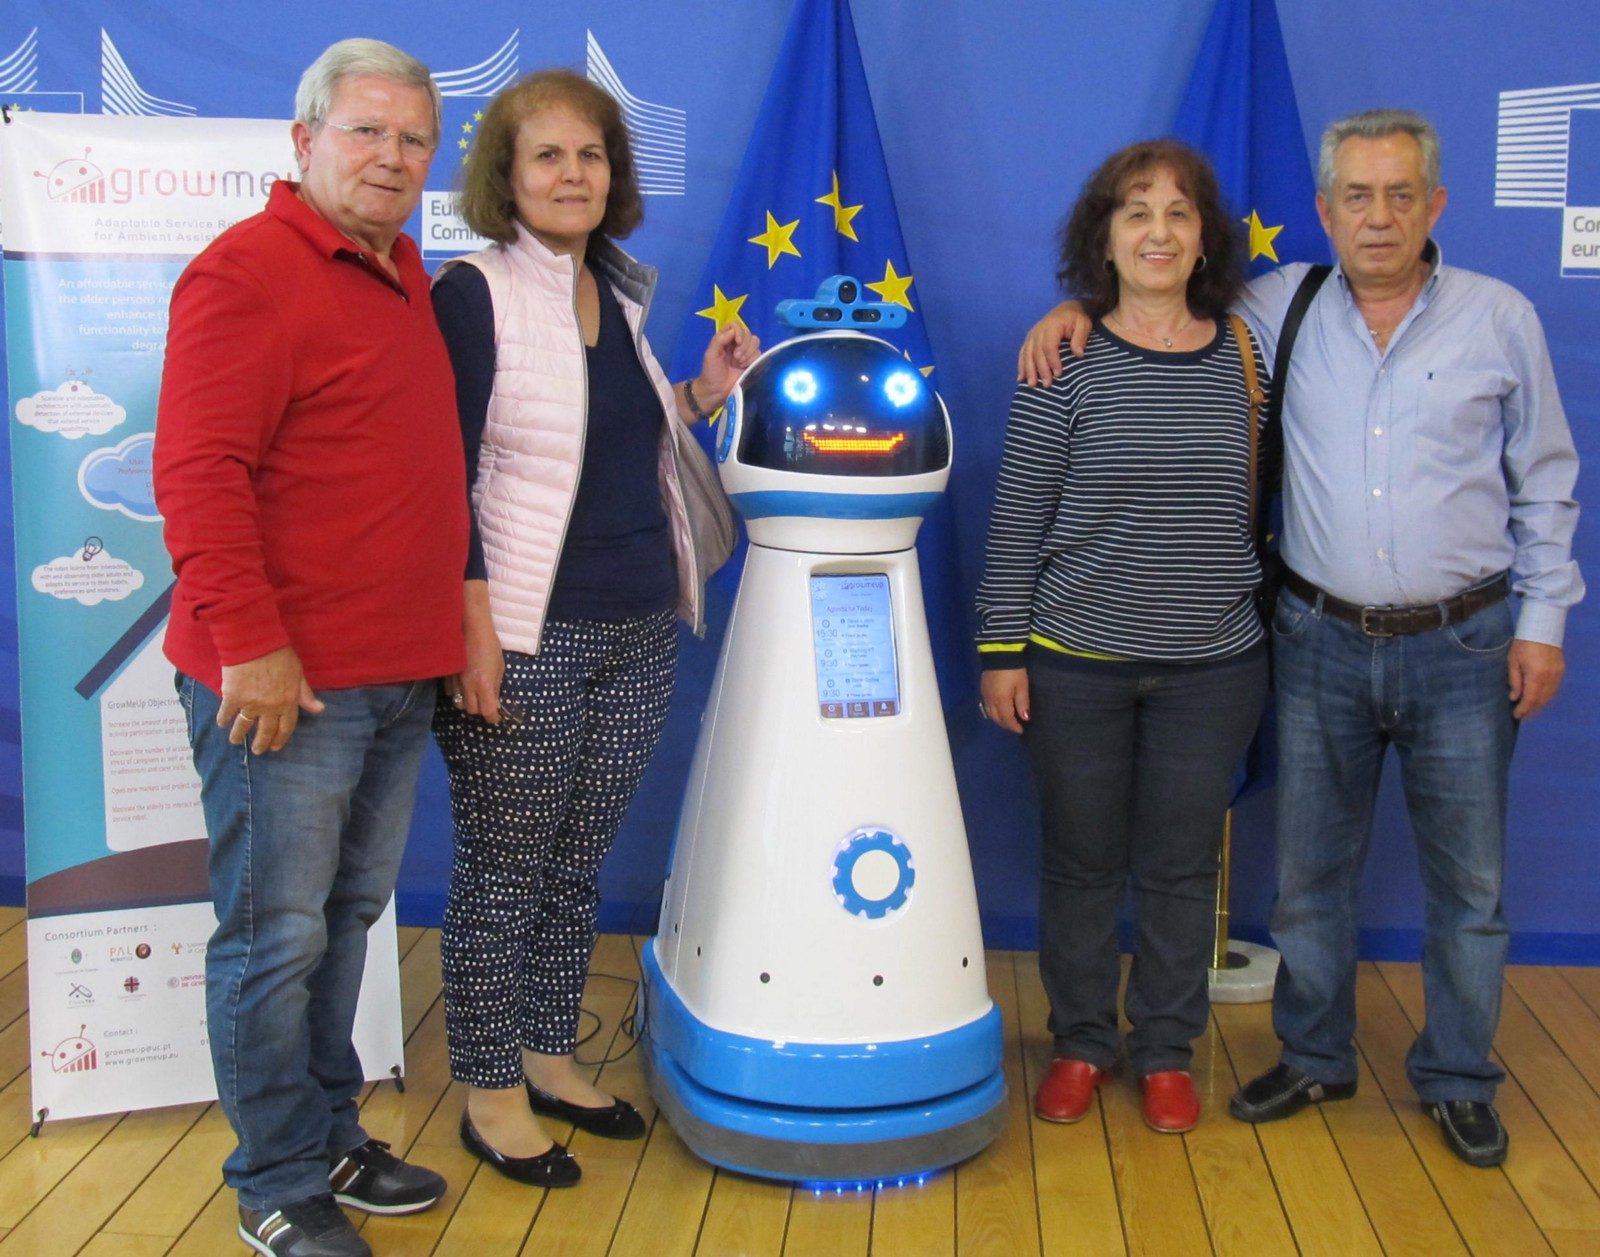 The proportion of elderly people is expected to almost double by 2080, so researchers are looking to robots to see if they can help care for the aging population. Image credit: GrowMeUp